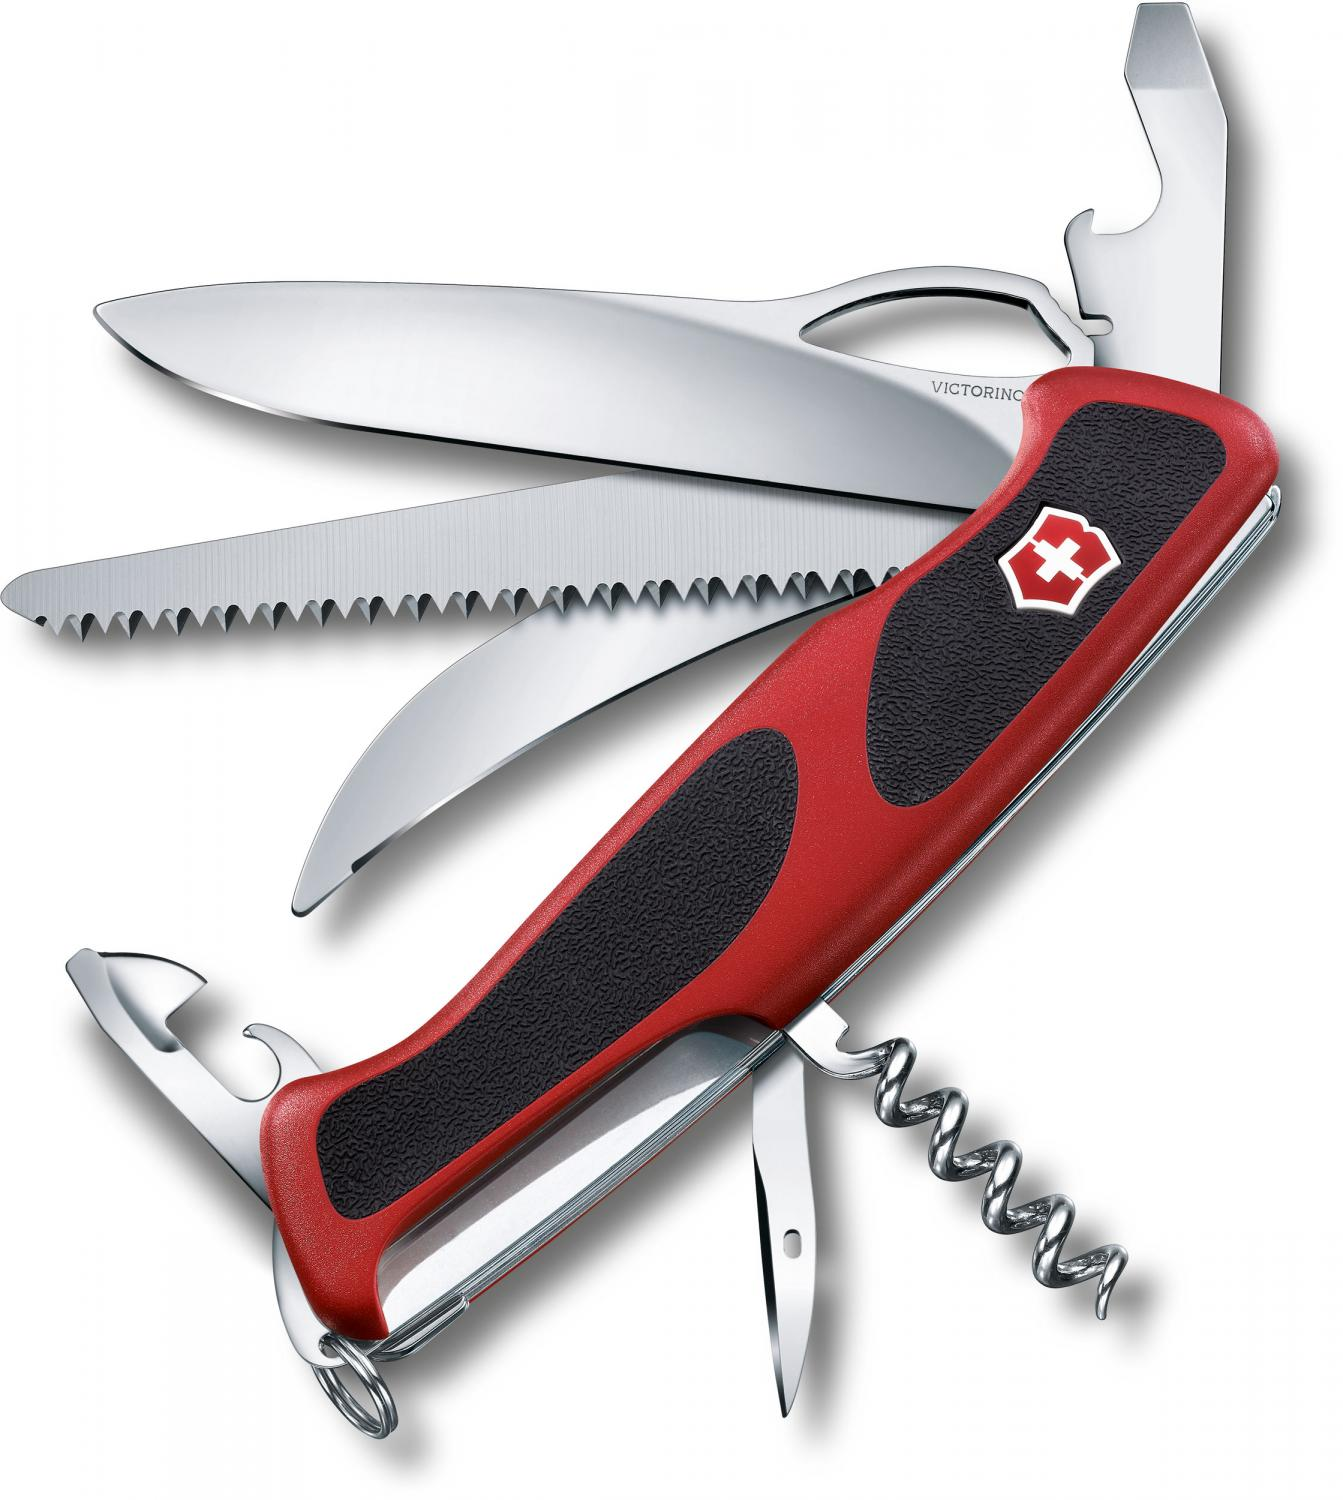 Victorinox Swiss Army RangerGrip 57 Hunter Multi-Tool 5-1/8 inch Red and Black Handles (0.9583.MCUS2)